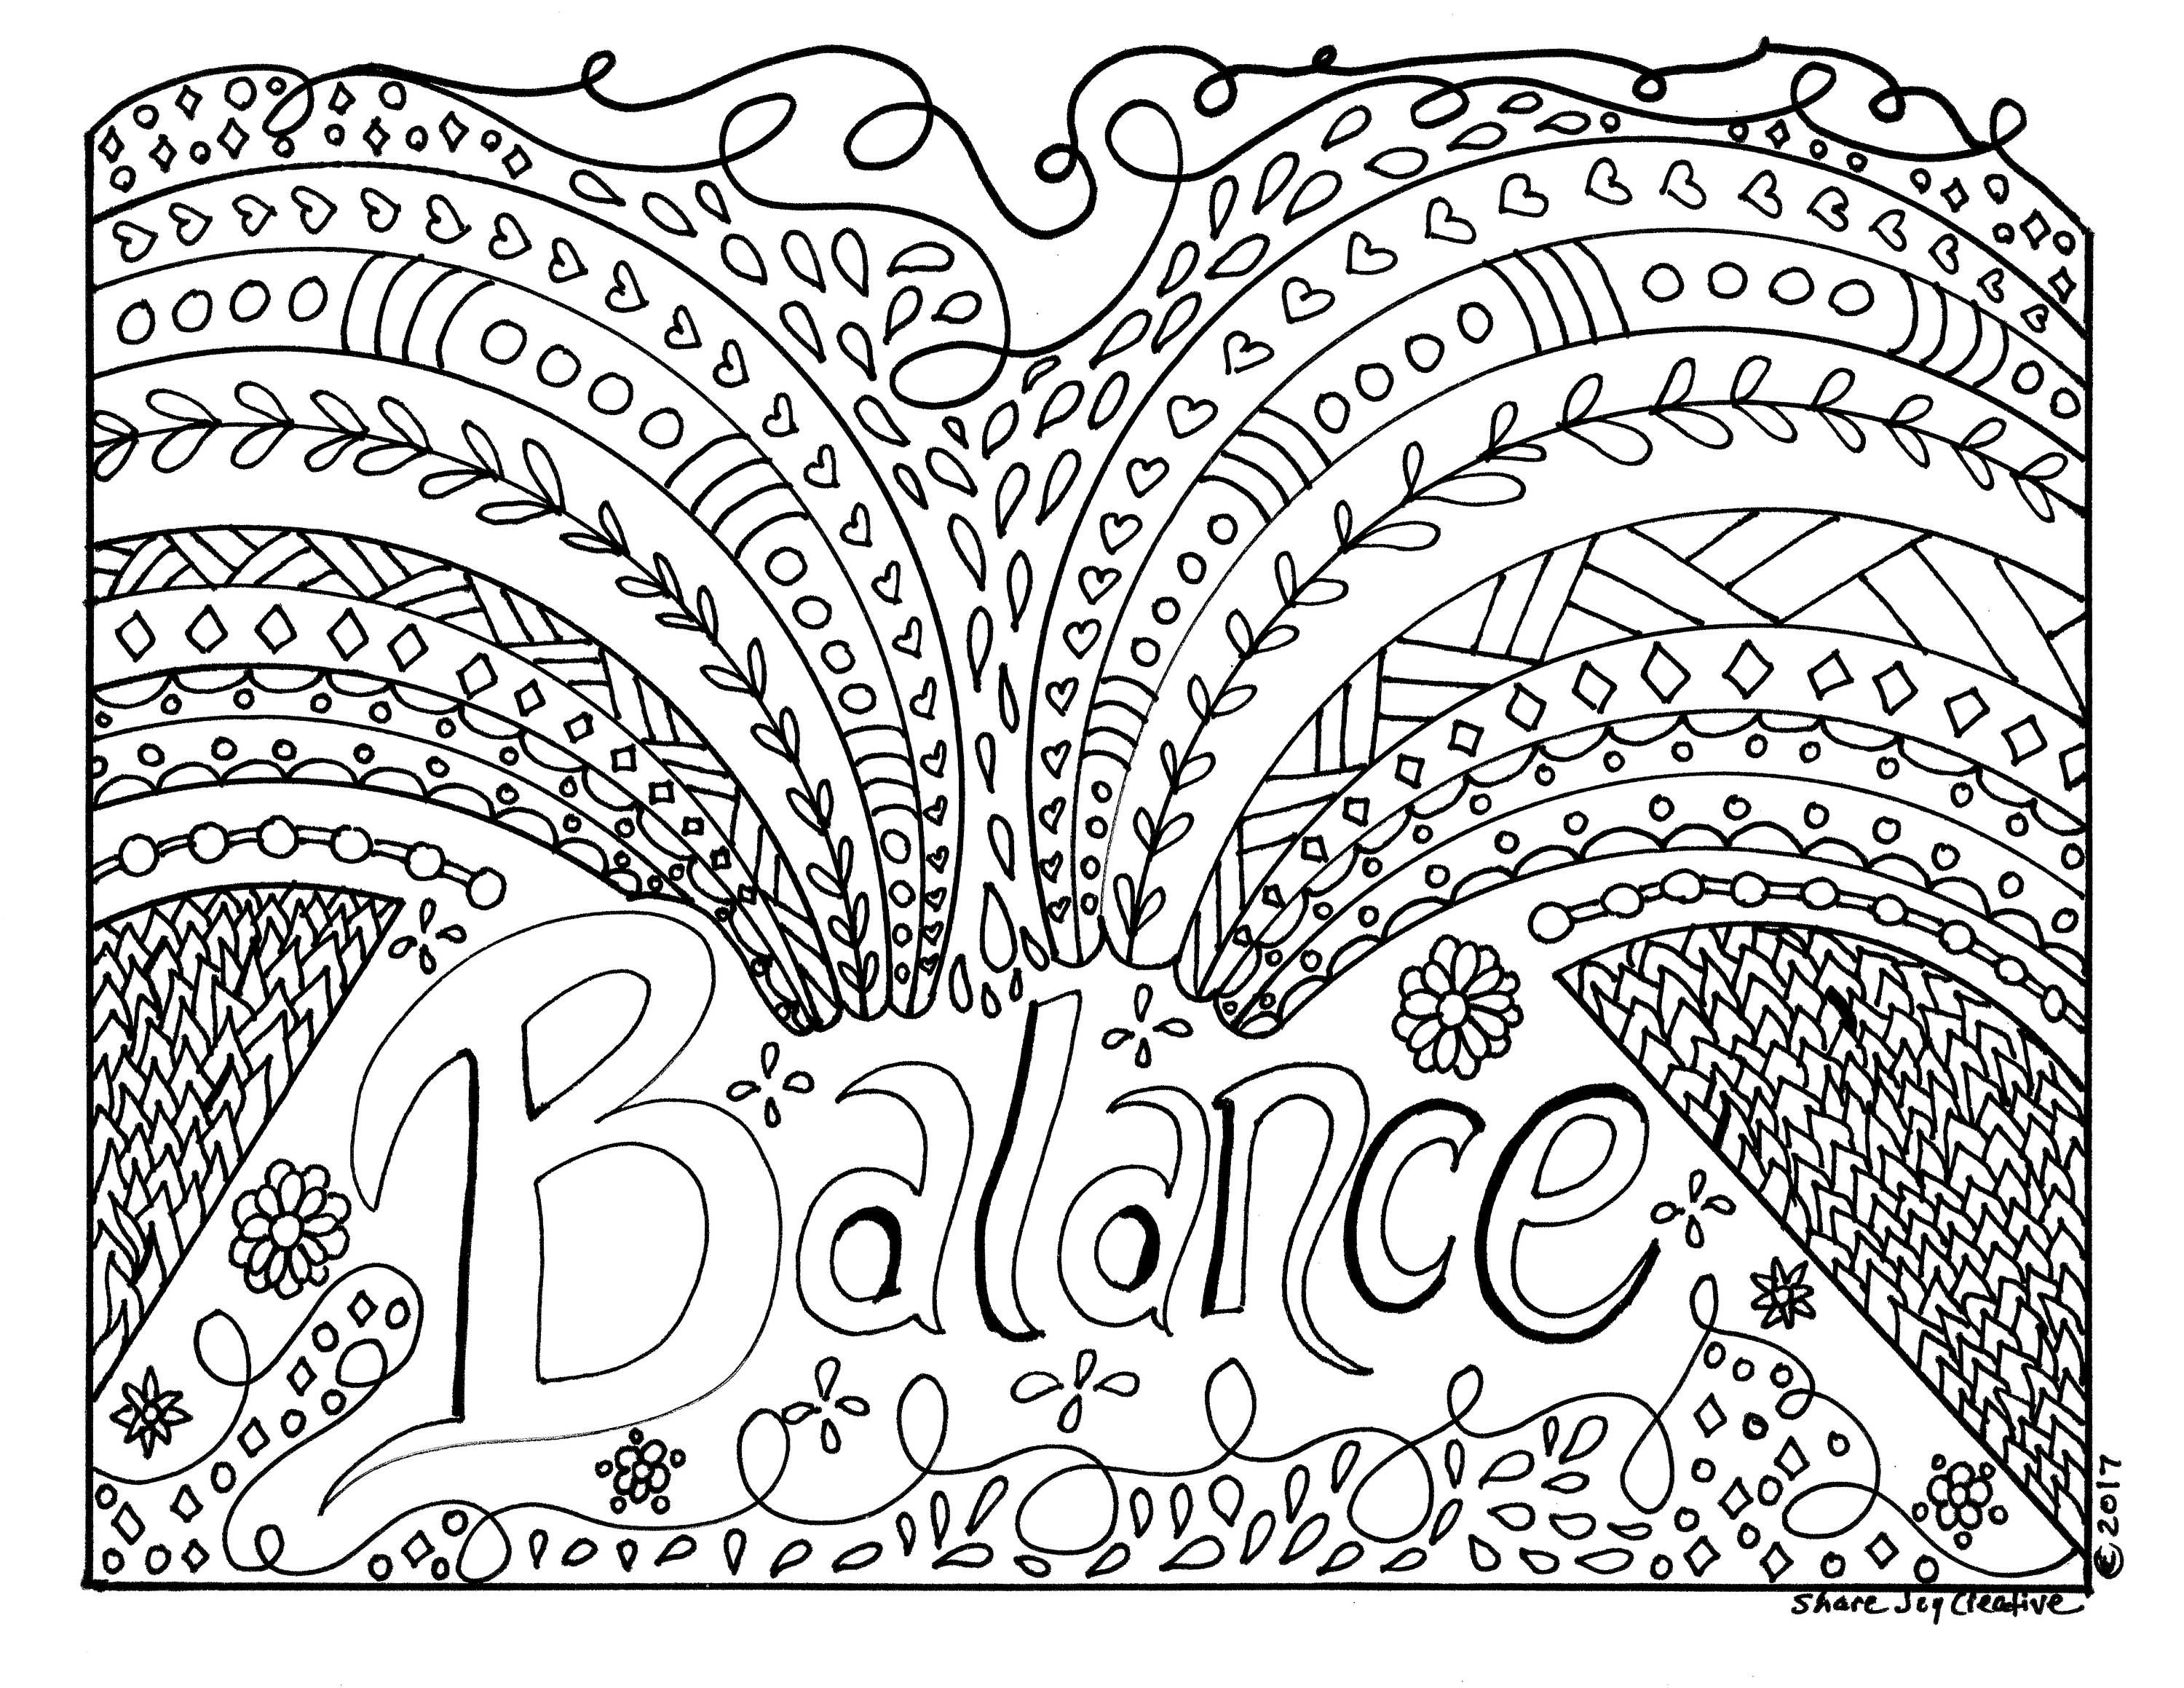 Balance Coloring Page Coloring Pages Color Coloring Books